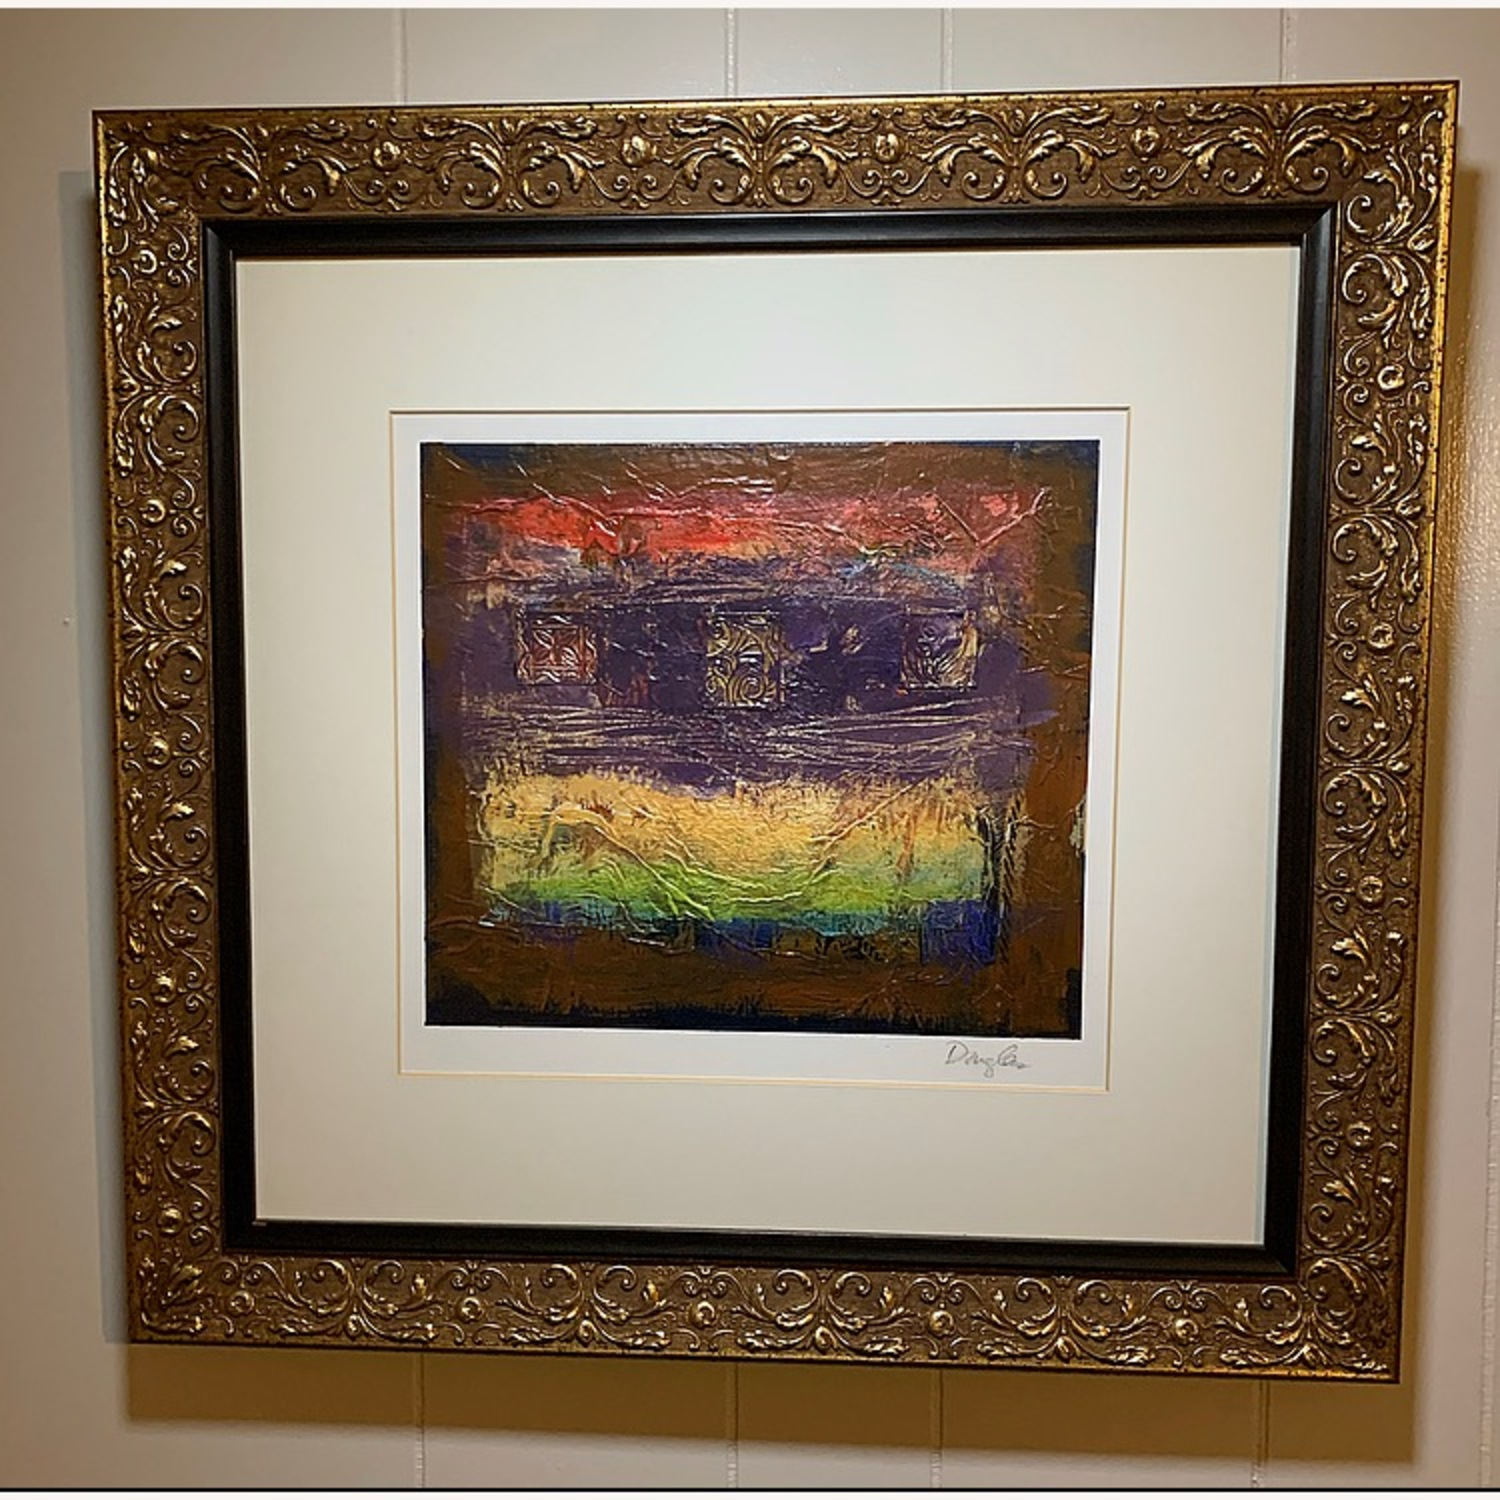 John Douglas Original Oil on Metal Paintings - image-4